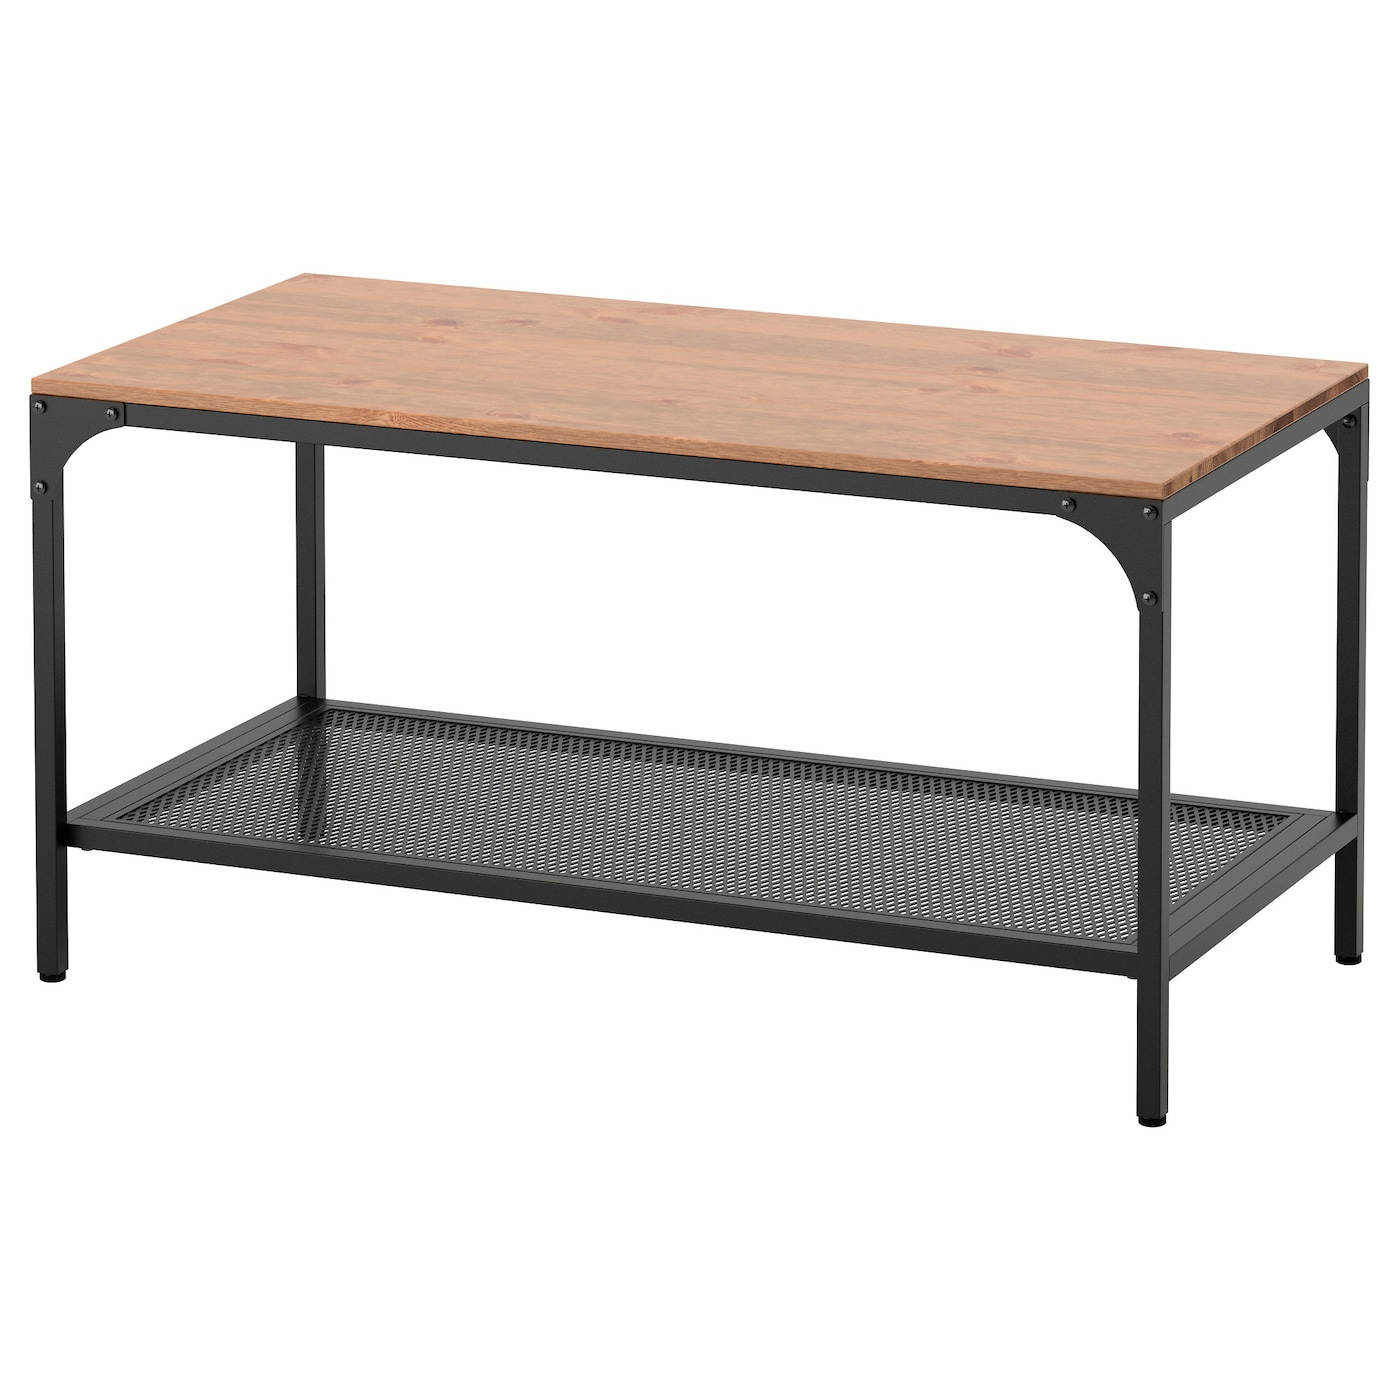 Fj Llbo Coffee Table Black 90x46 Cm Ikea